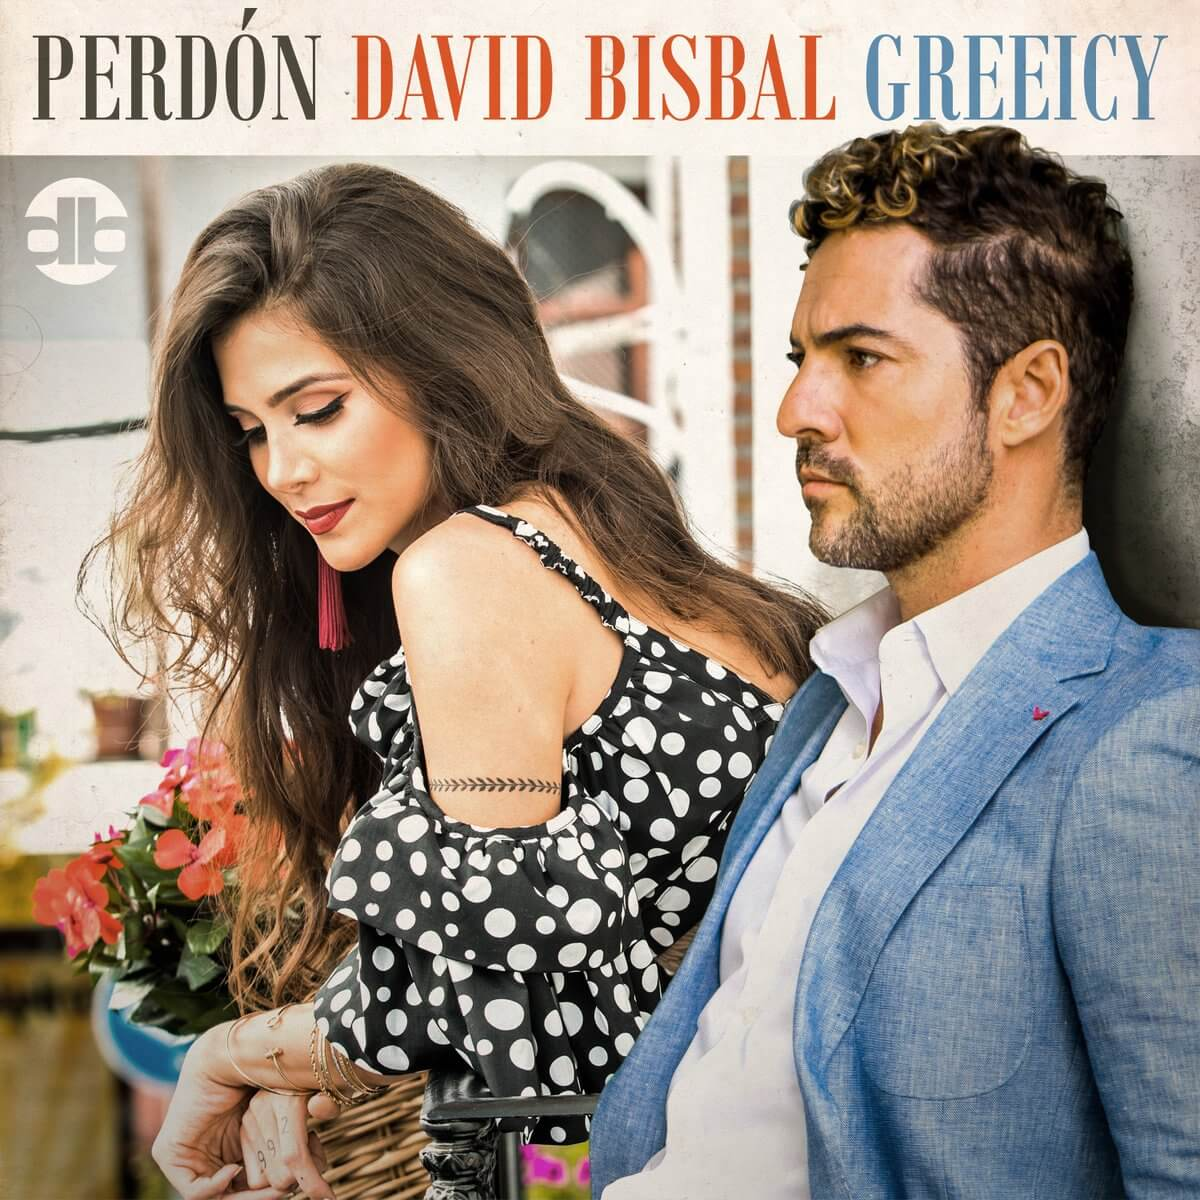 David Bisbal, Greeicy, Perdón, descarga, videoclip